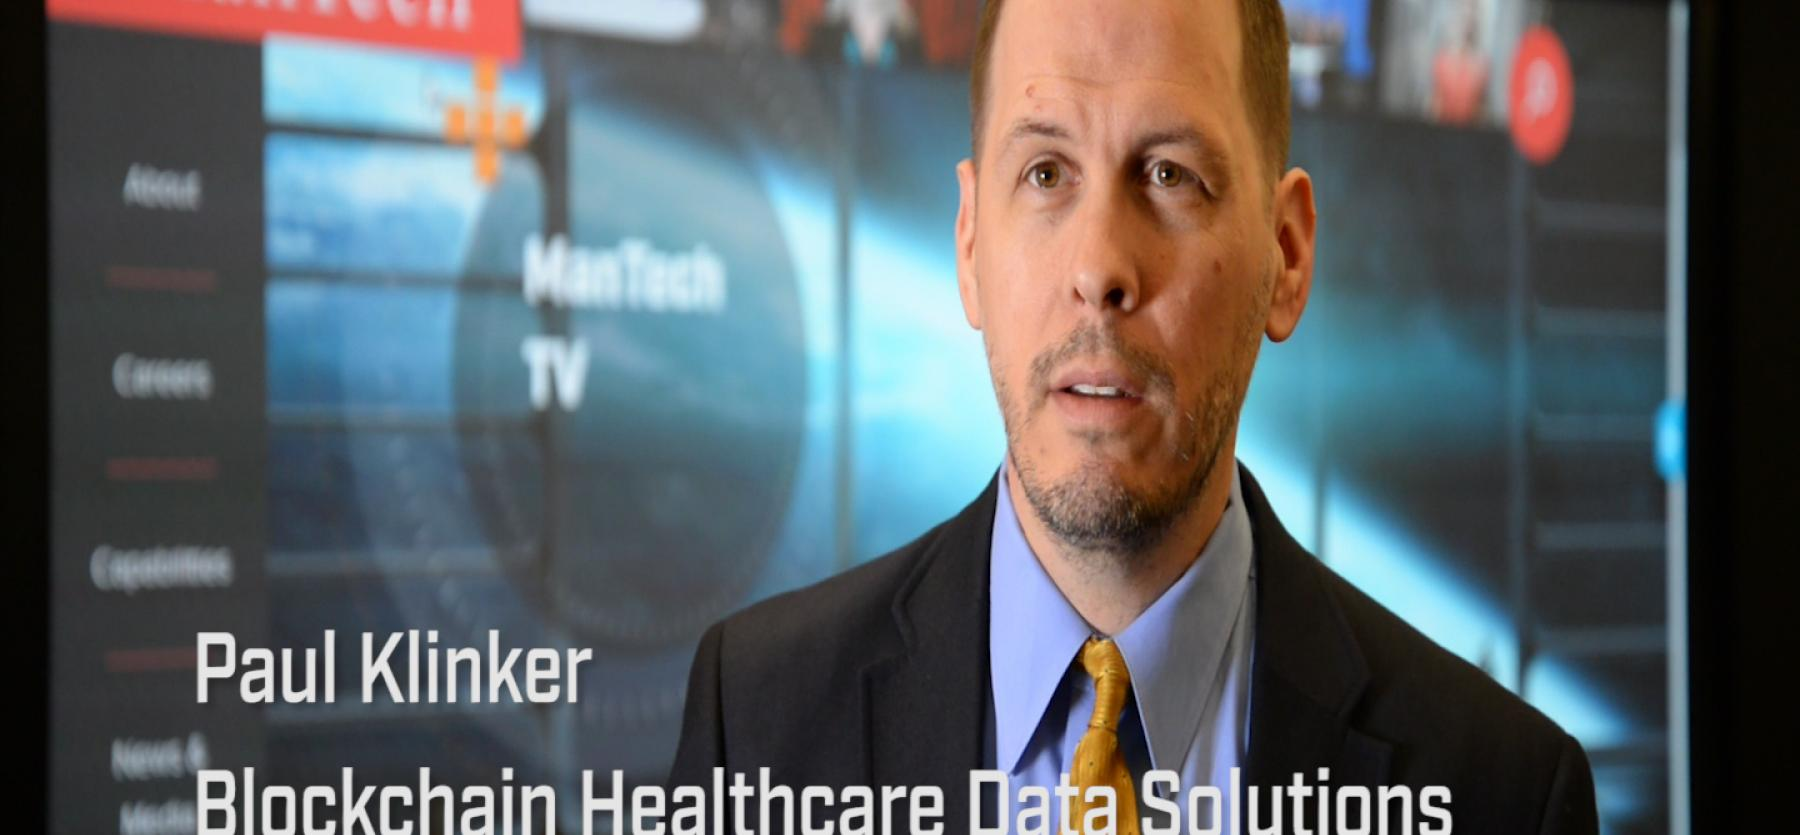 Paul Klinker - Blockchain Healthcare Data Solutions